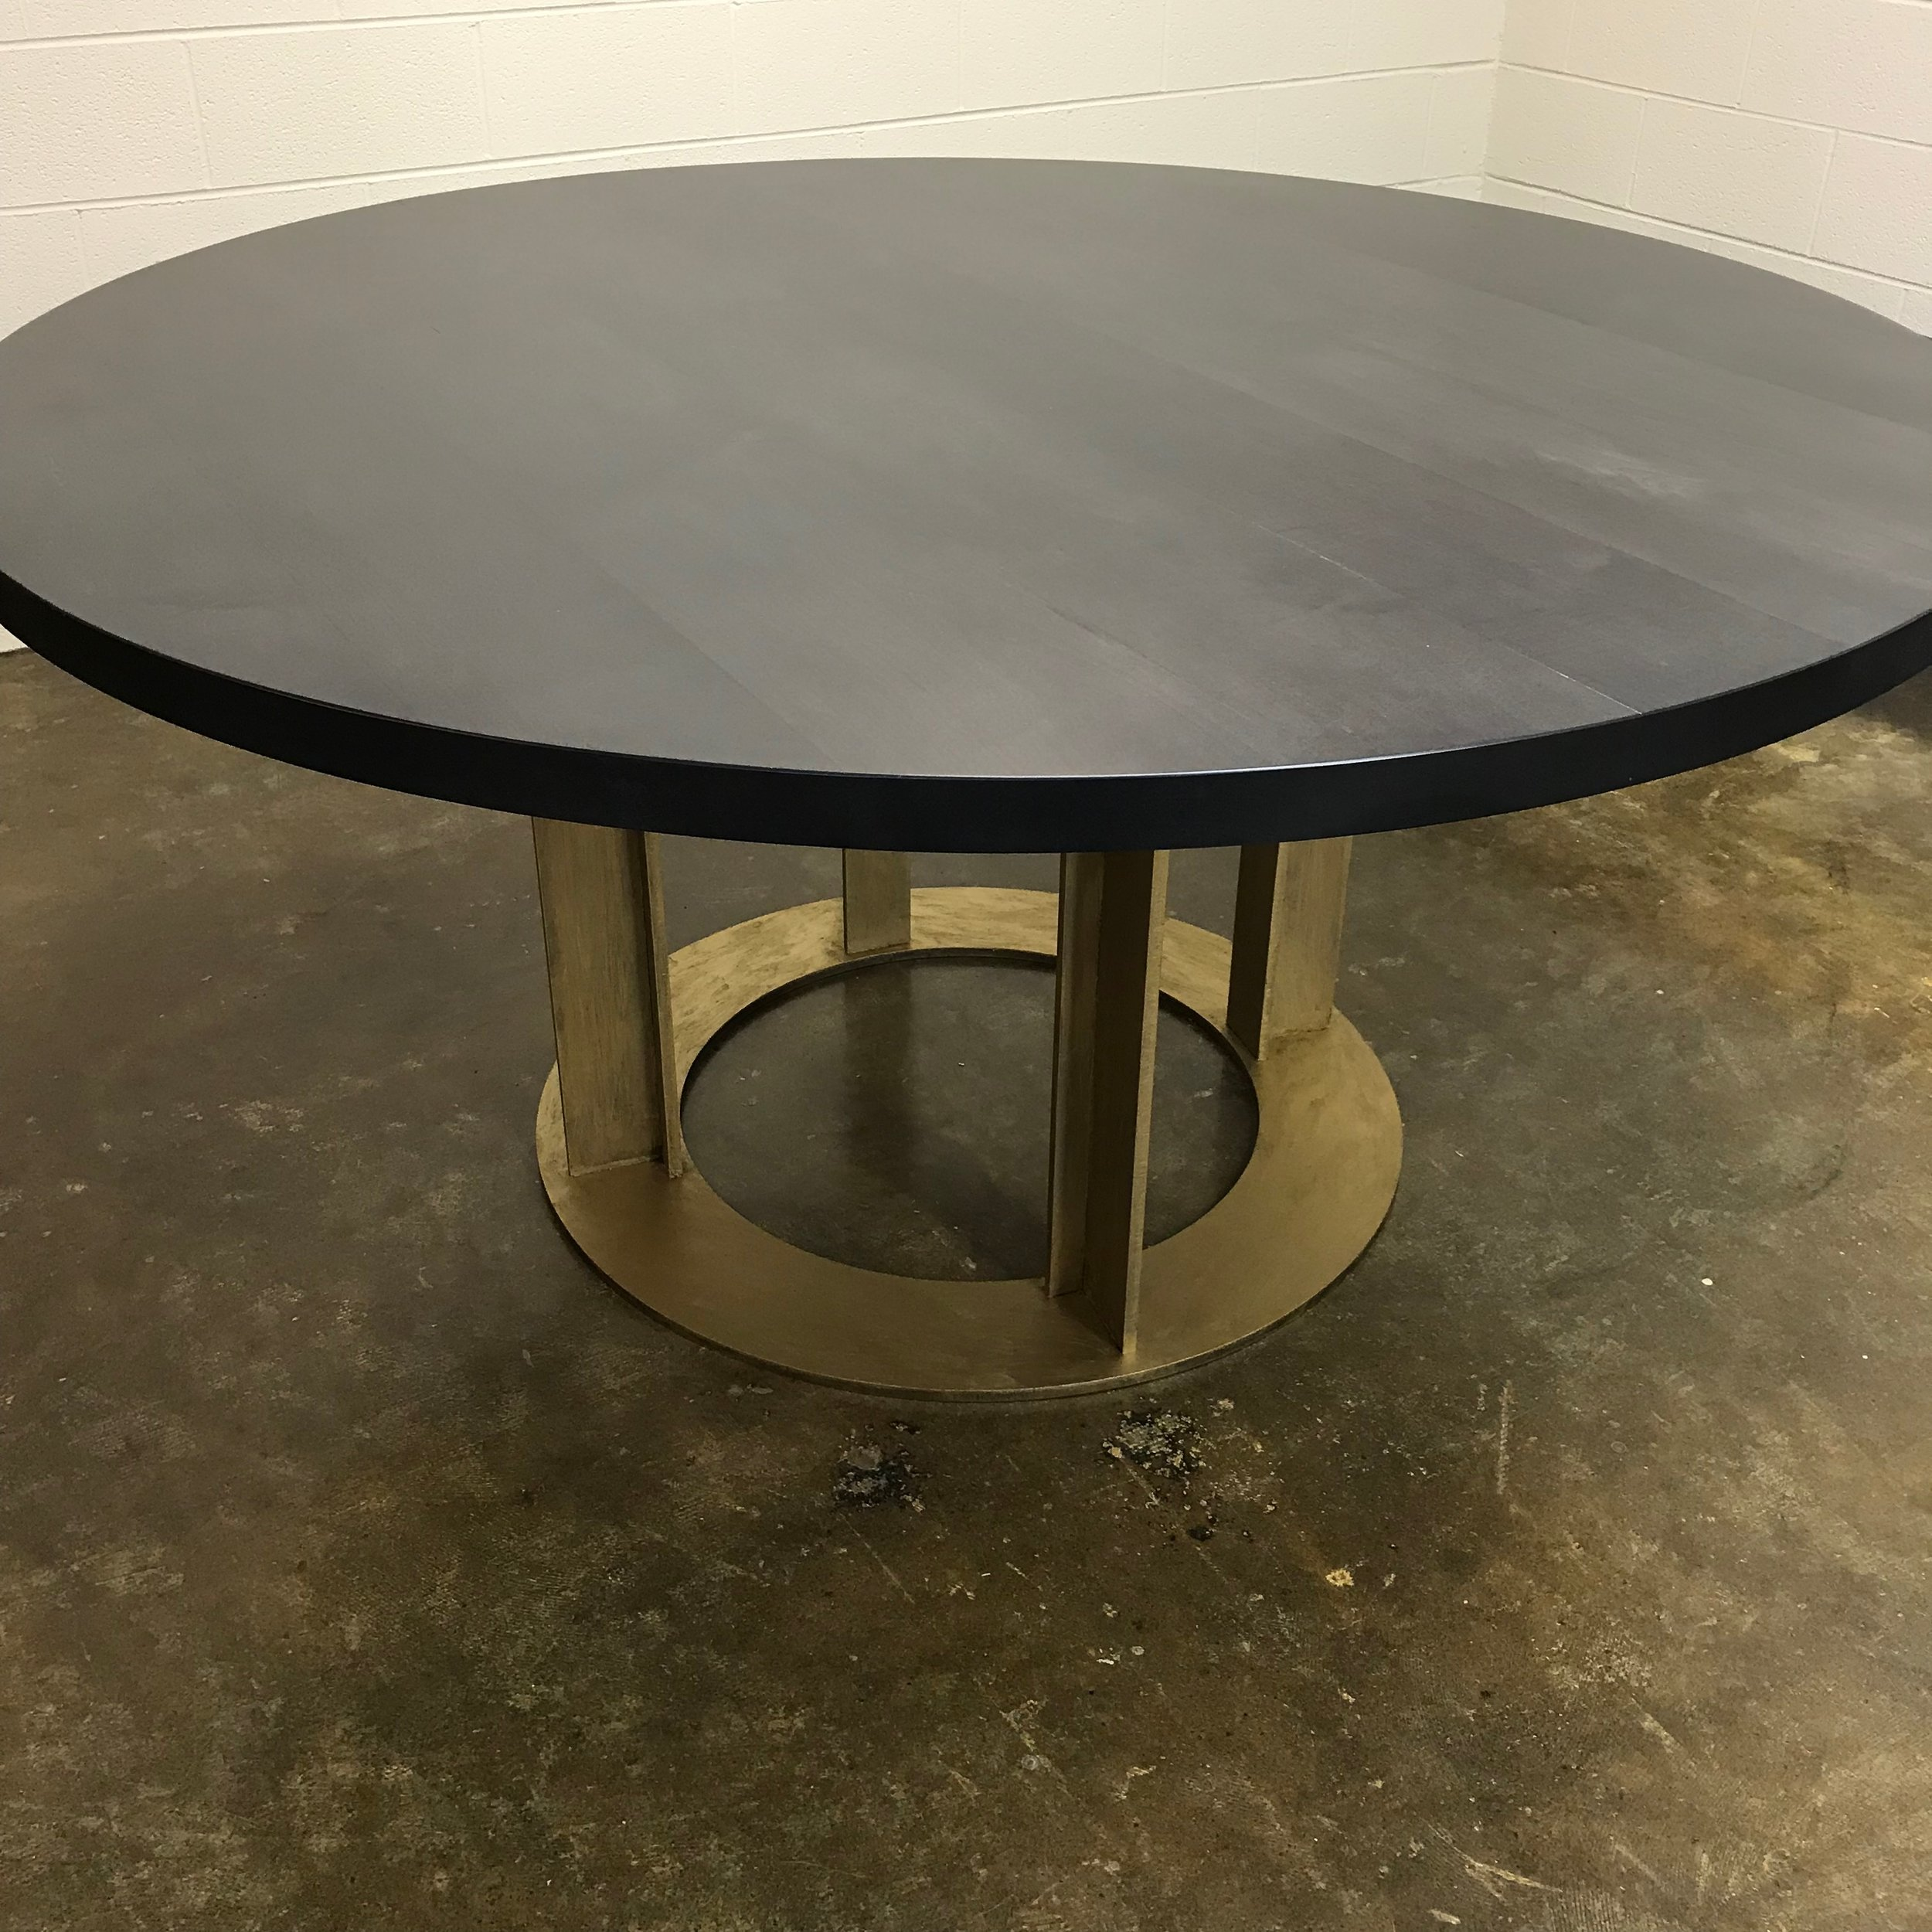 josh-utsey-design-custom-furniture-table-metal-charlotte-nc-round-table.jpg